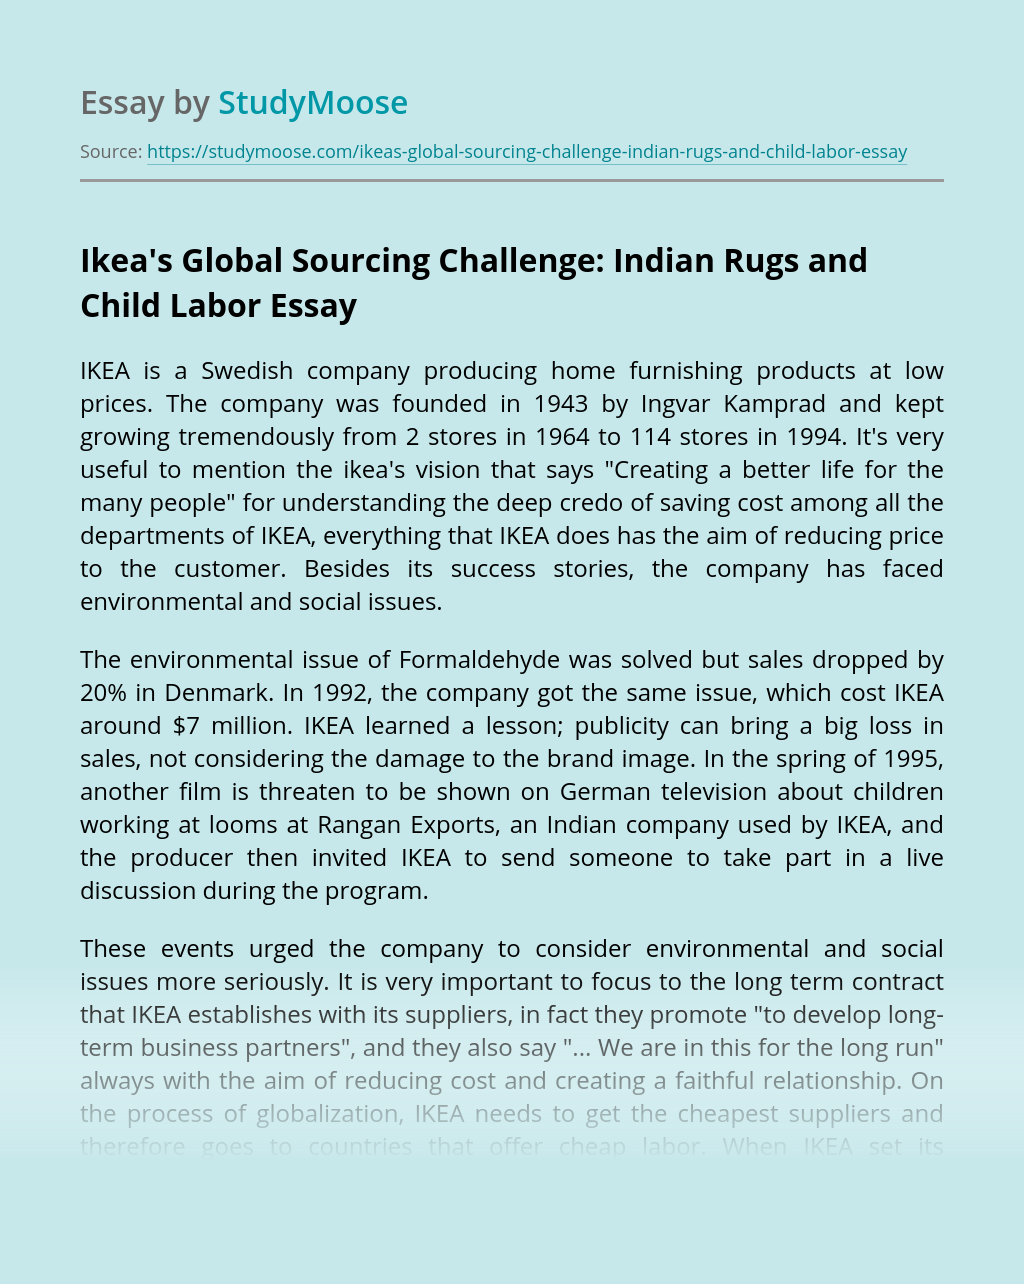 Ikea's Global Sourcing Challenge: Indian Rugs and Child Labor